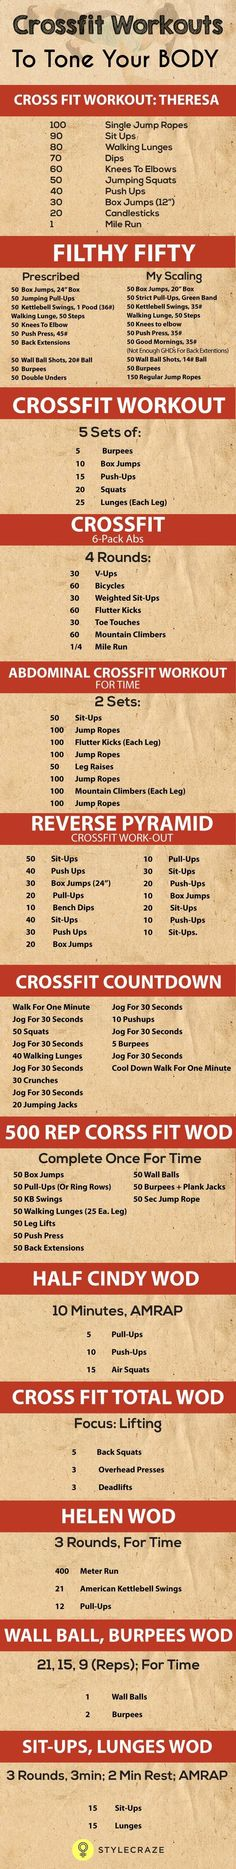 20 Effective Crossfit Workouts To Tone Your Body - Check This Awesome Article !!!